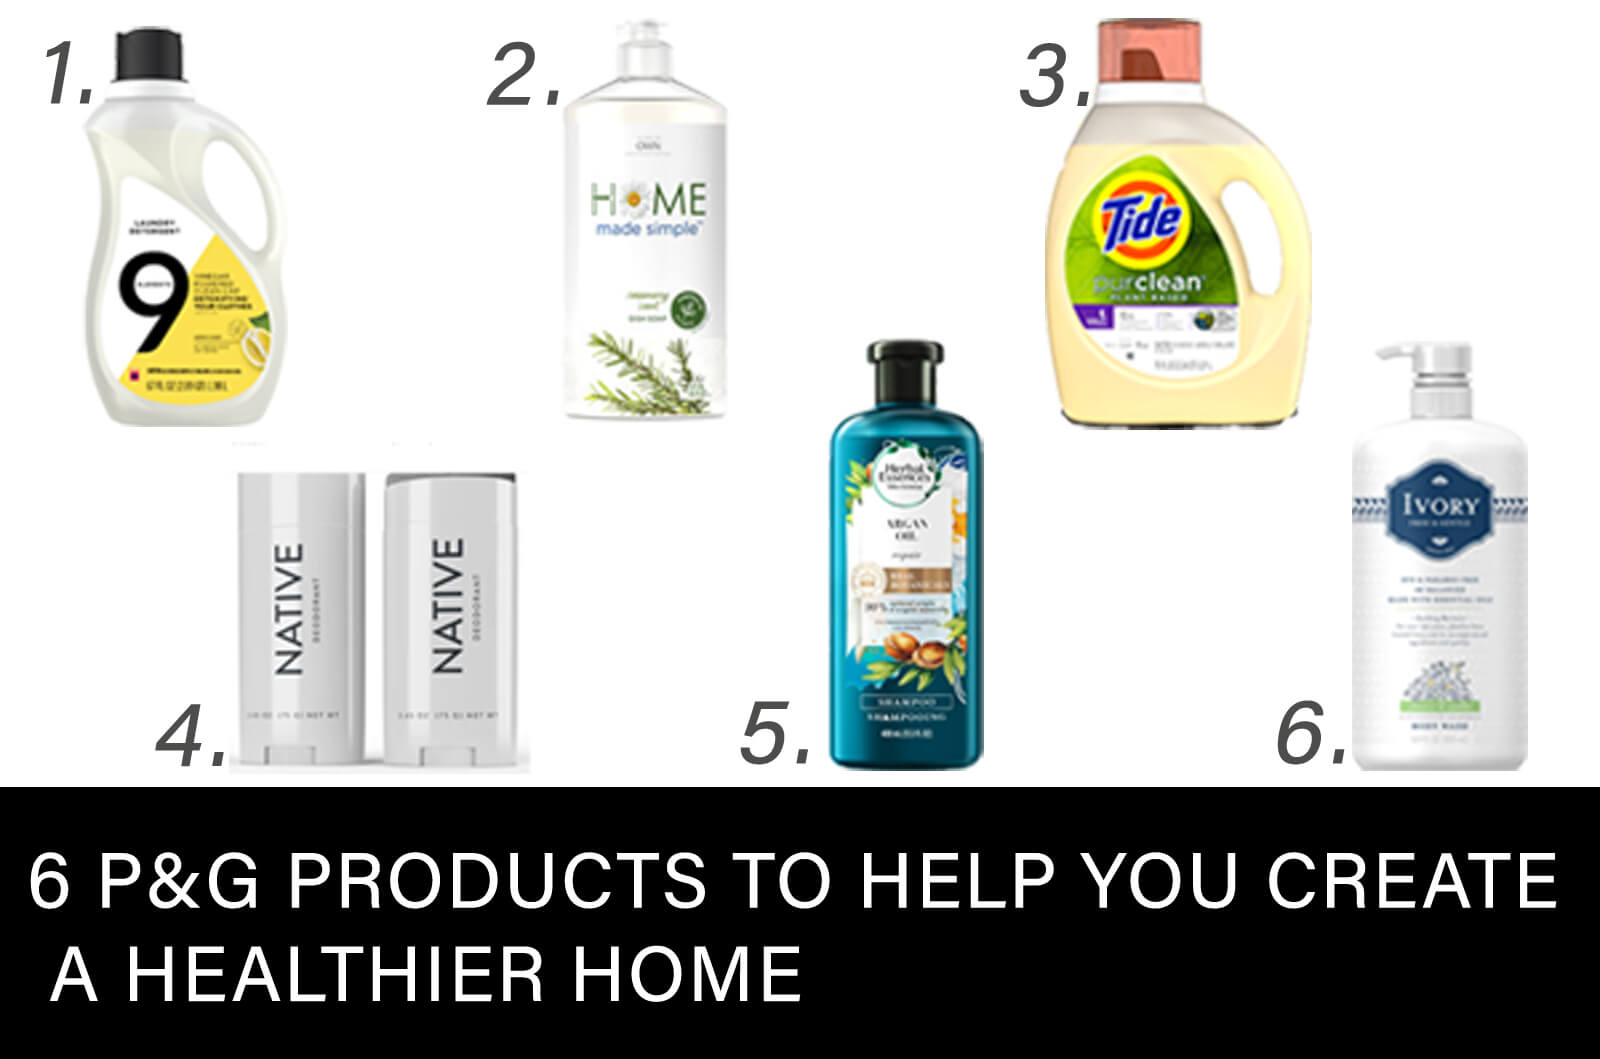 6 P&G Products to Help You Create a Healthier Home